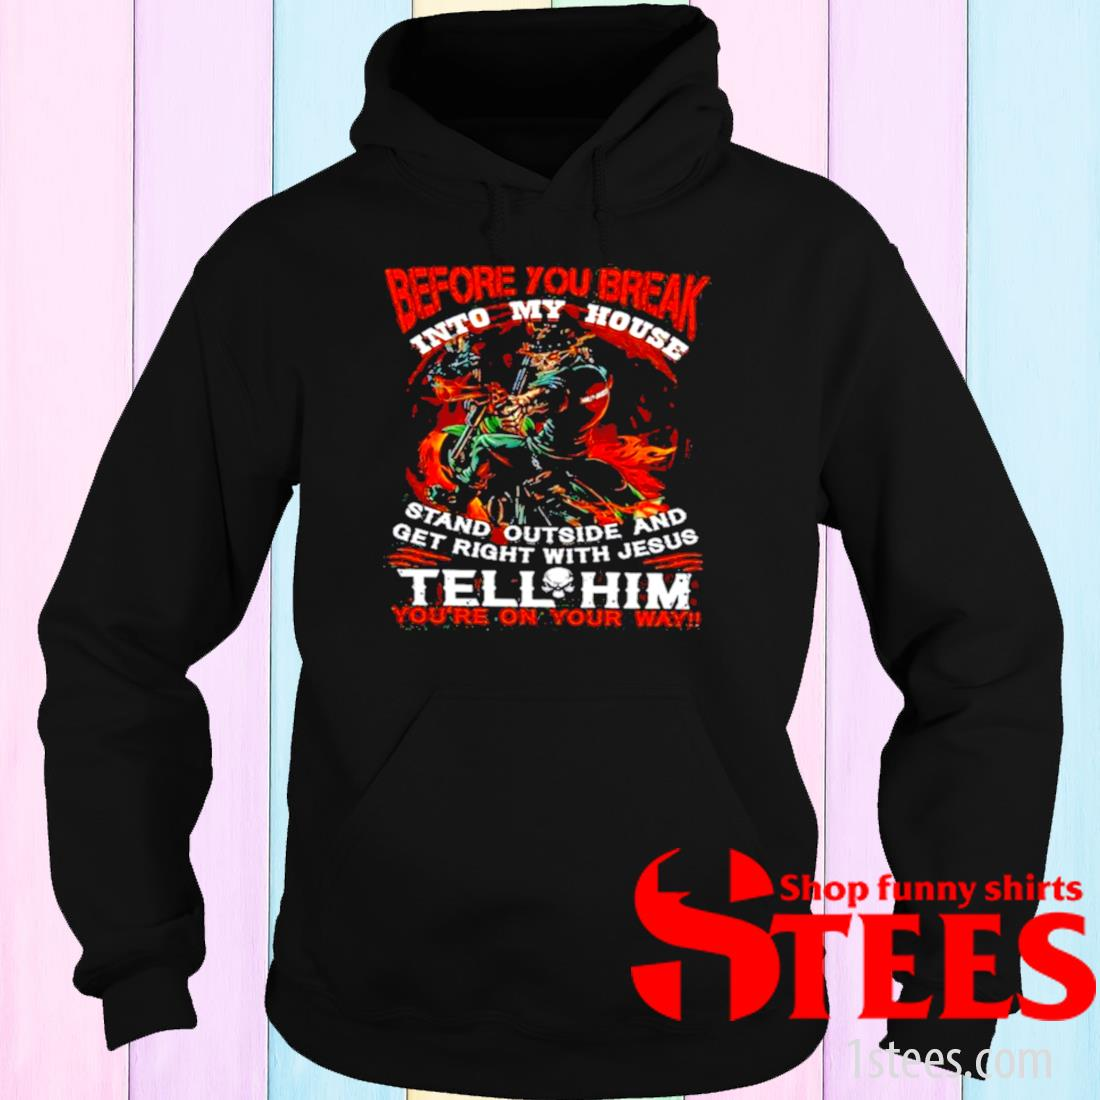 Before You Break Into My House Stand Outside And Get Right With Jesus Tell Him You're On Your Way Motorcycles Shirt hoodie